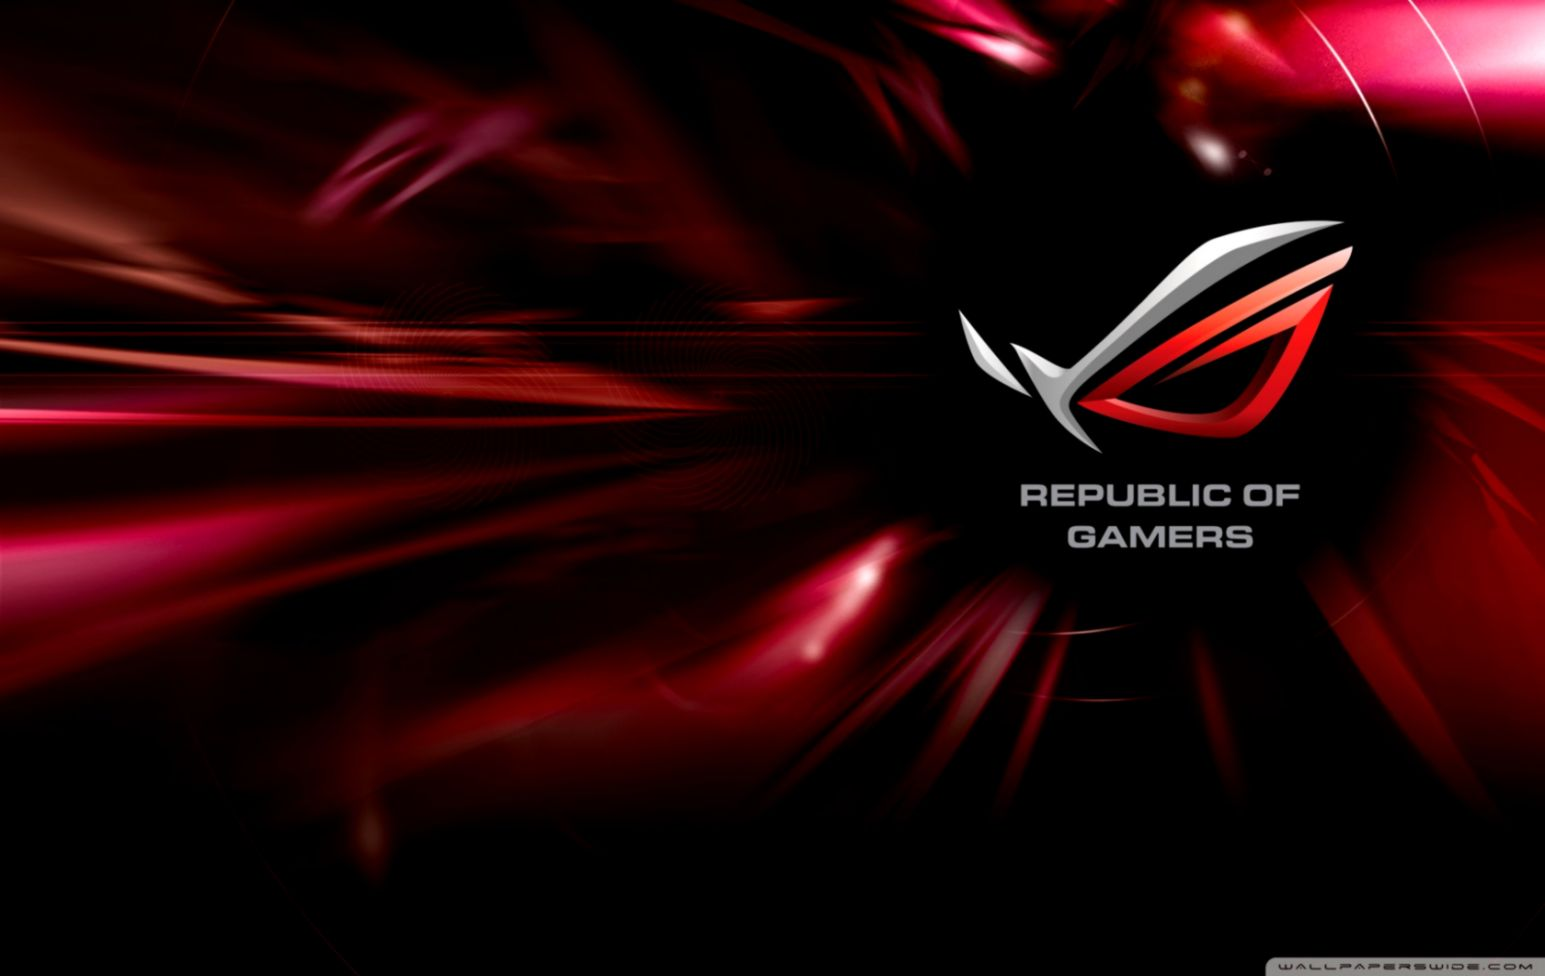 Asus Rog New Logo Hd Wallpaper Wallpapers Legend